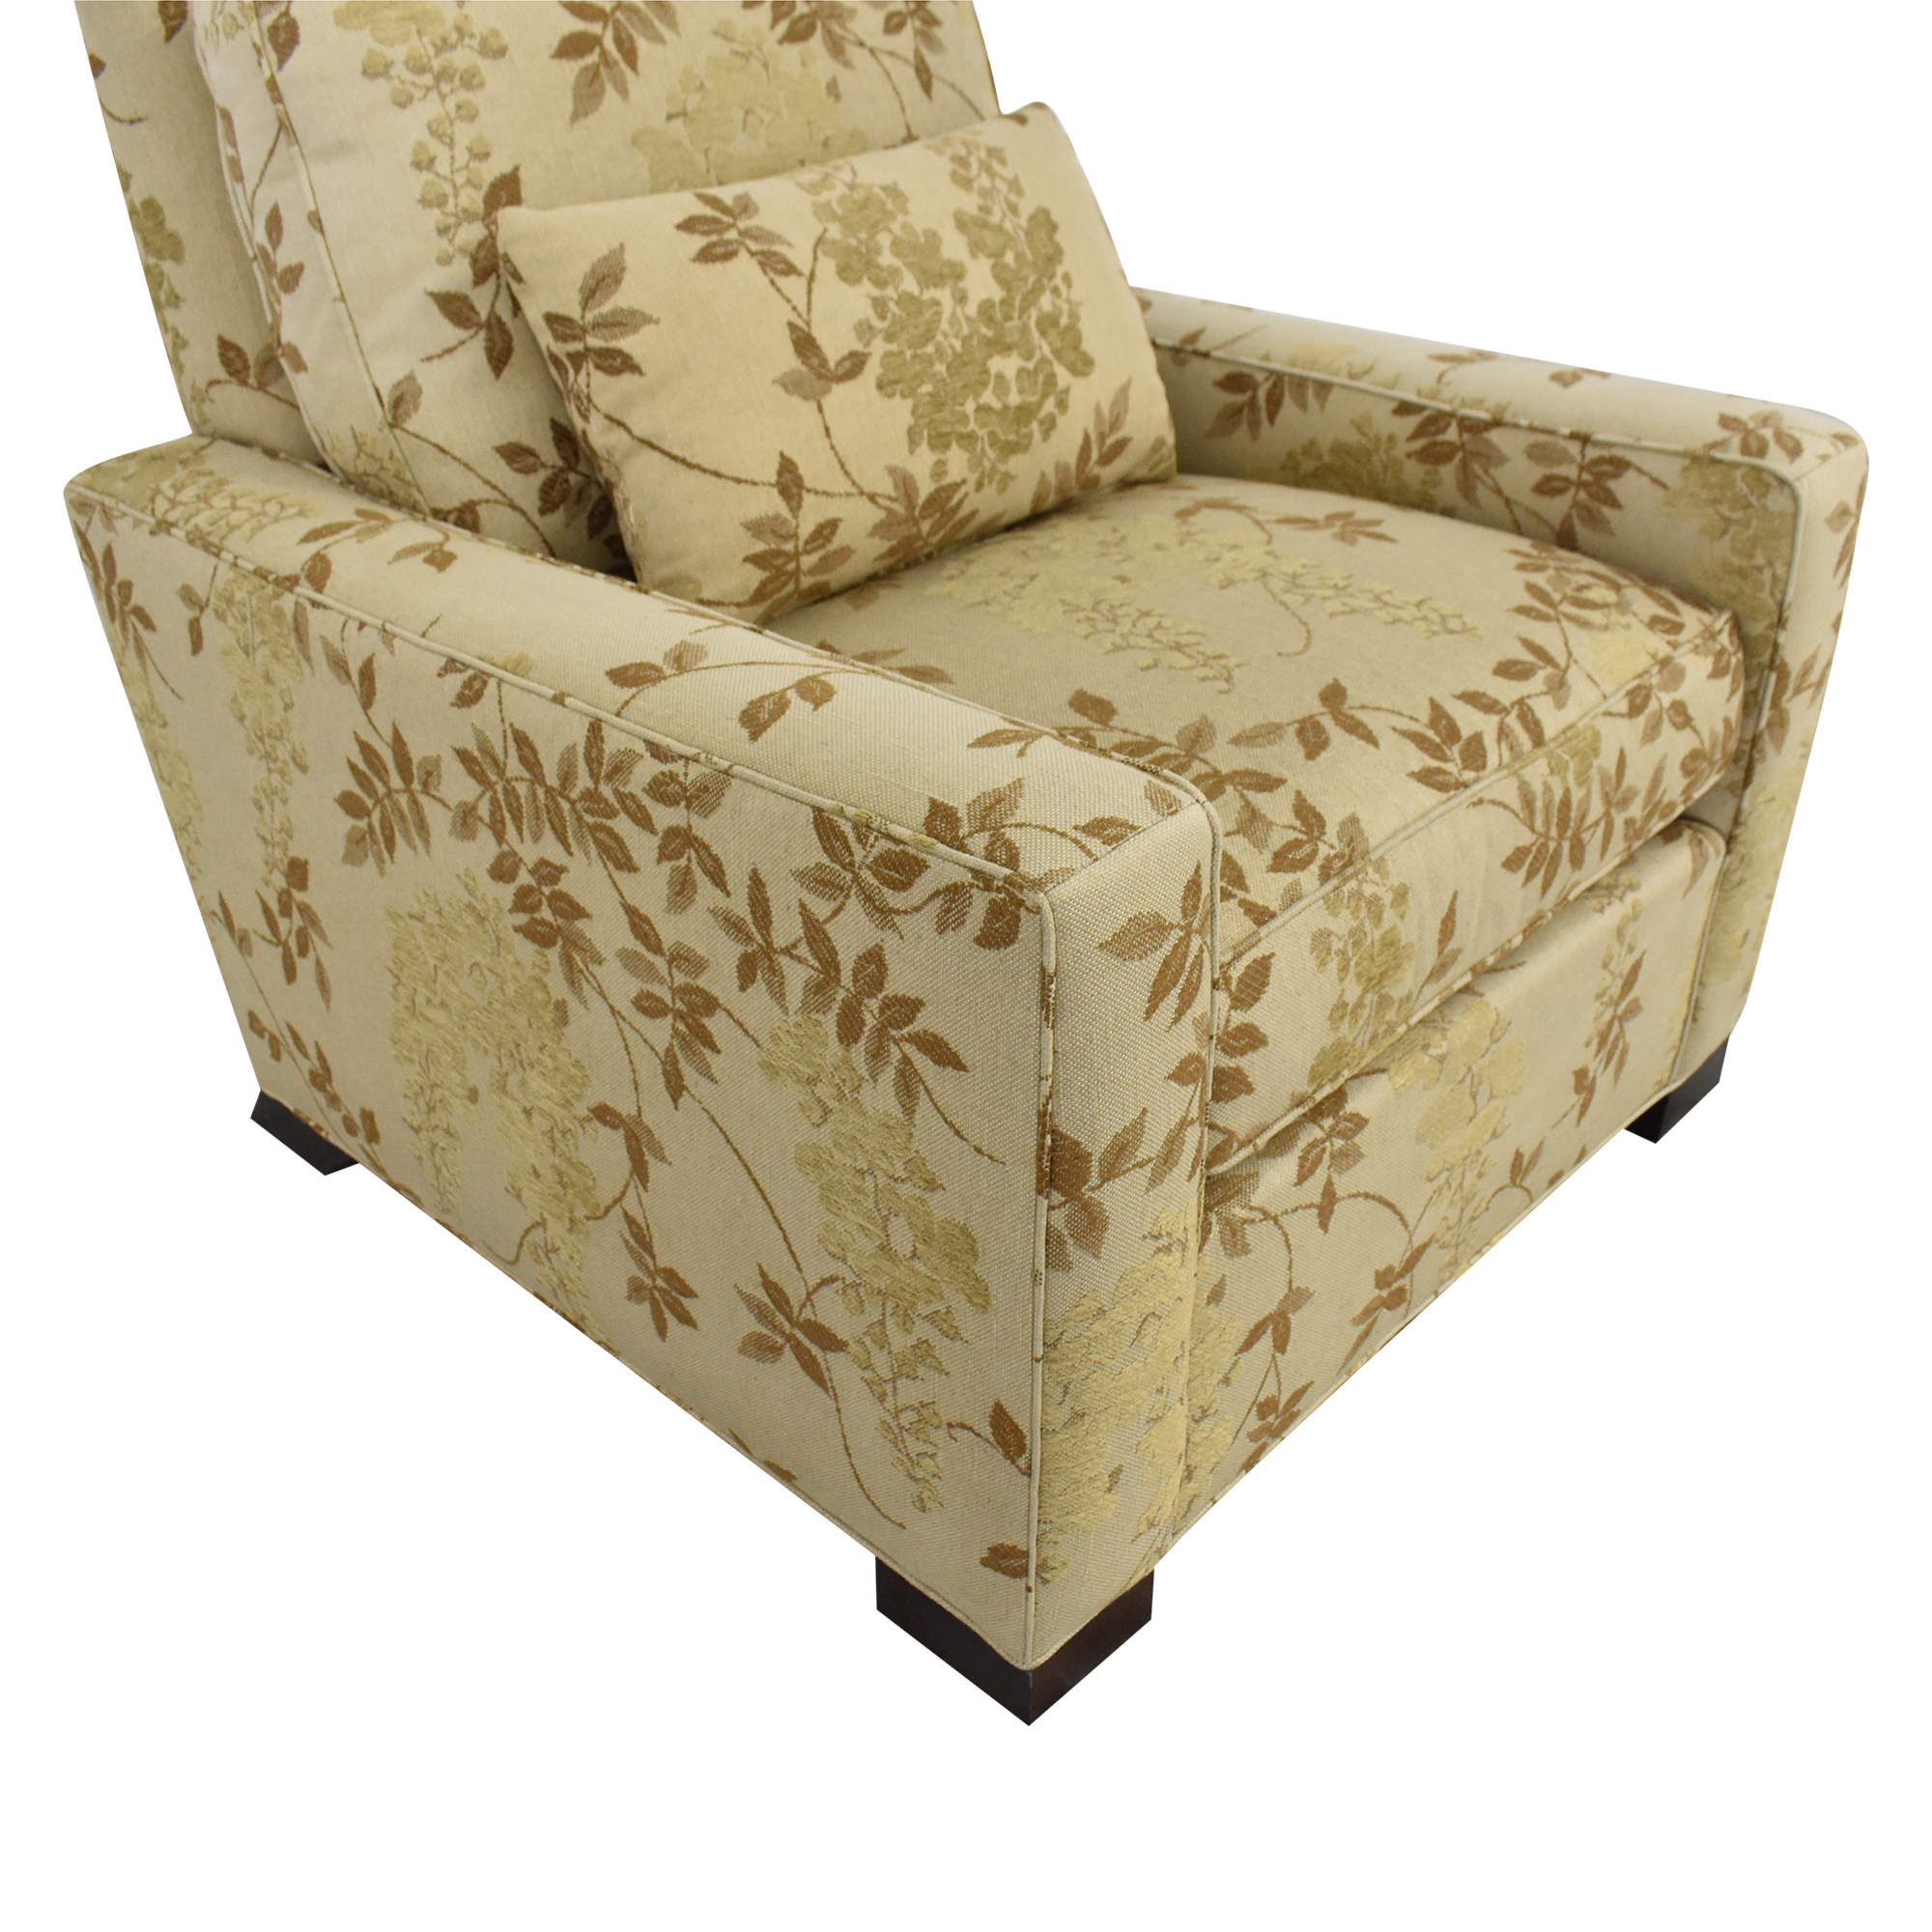 shop Hickory Chair Upholstered Club Chair Hickory Chair Accent Chairs